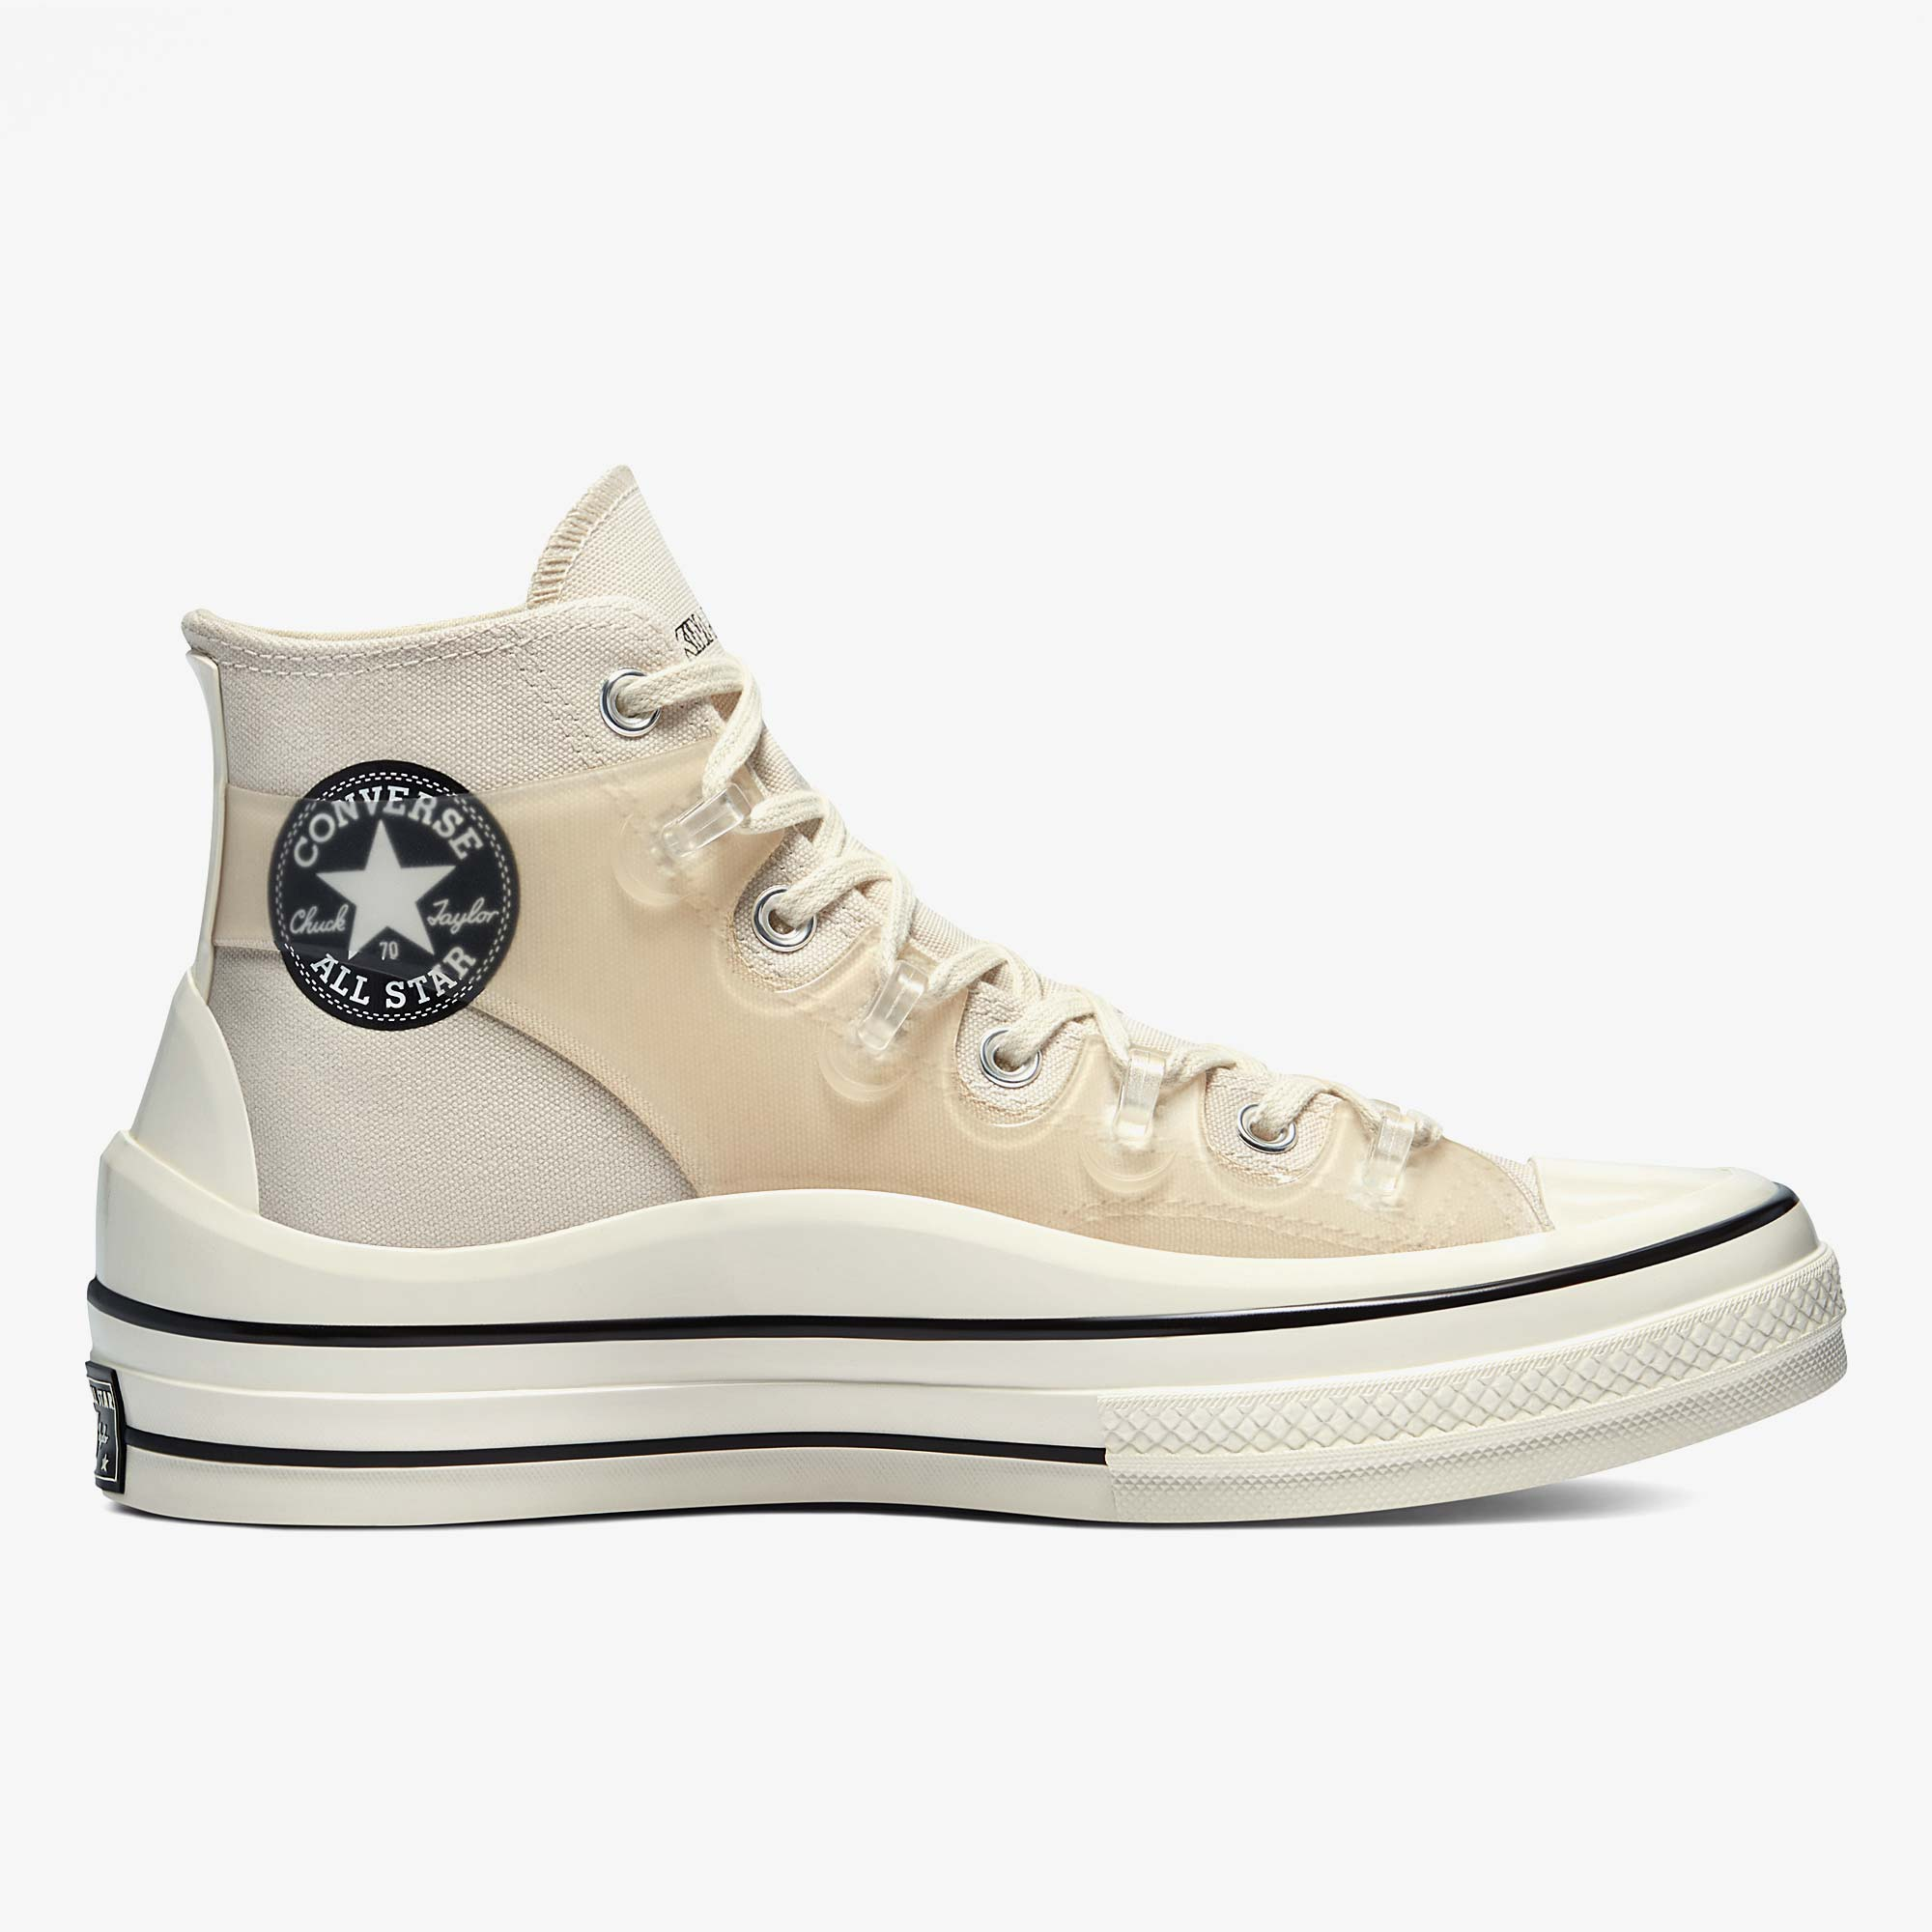 Converse x Kim Jones Chuck 70 Utility Wave Hi - White 3